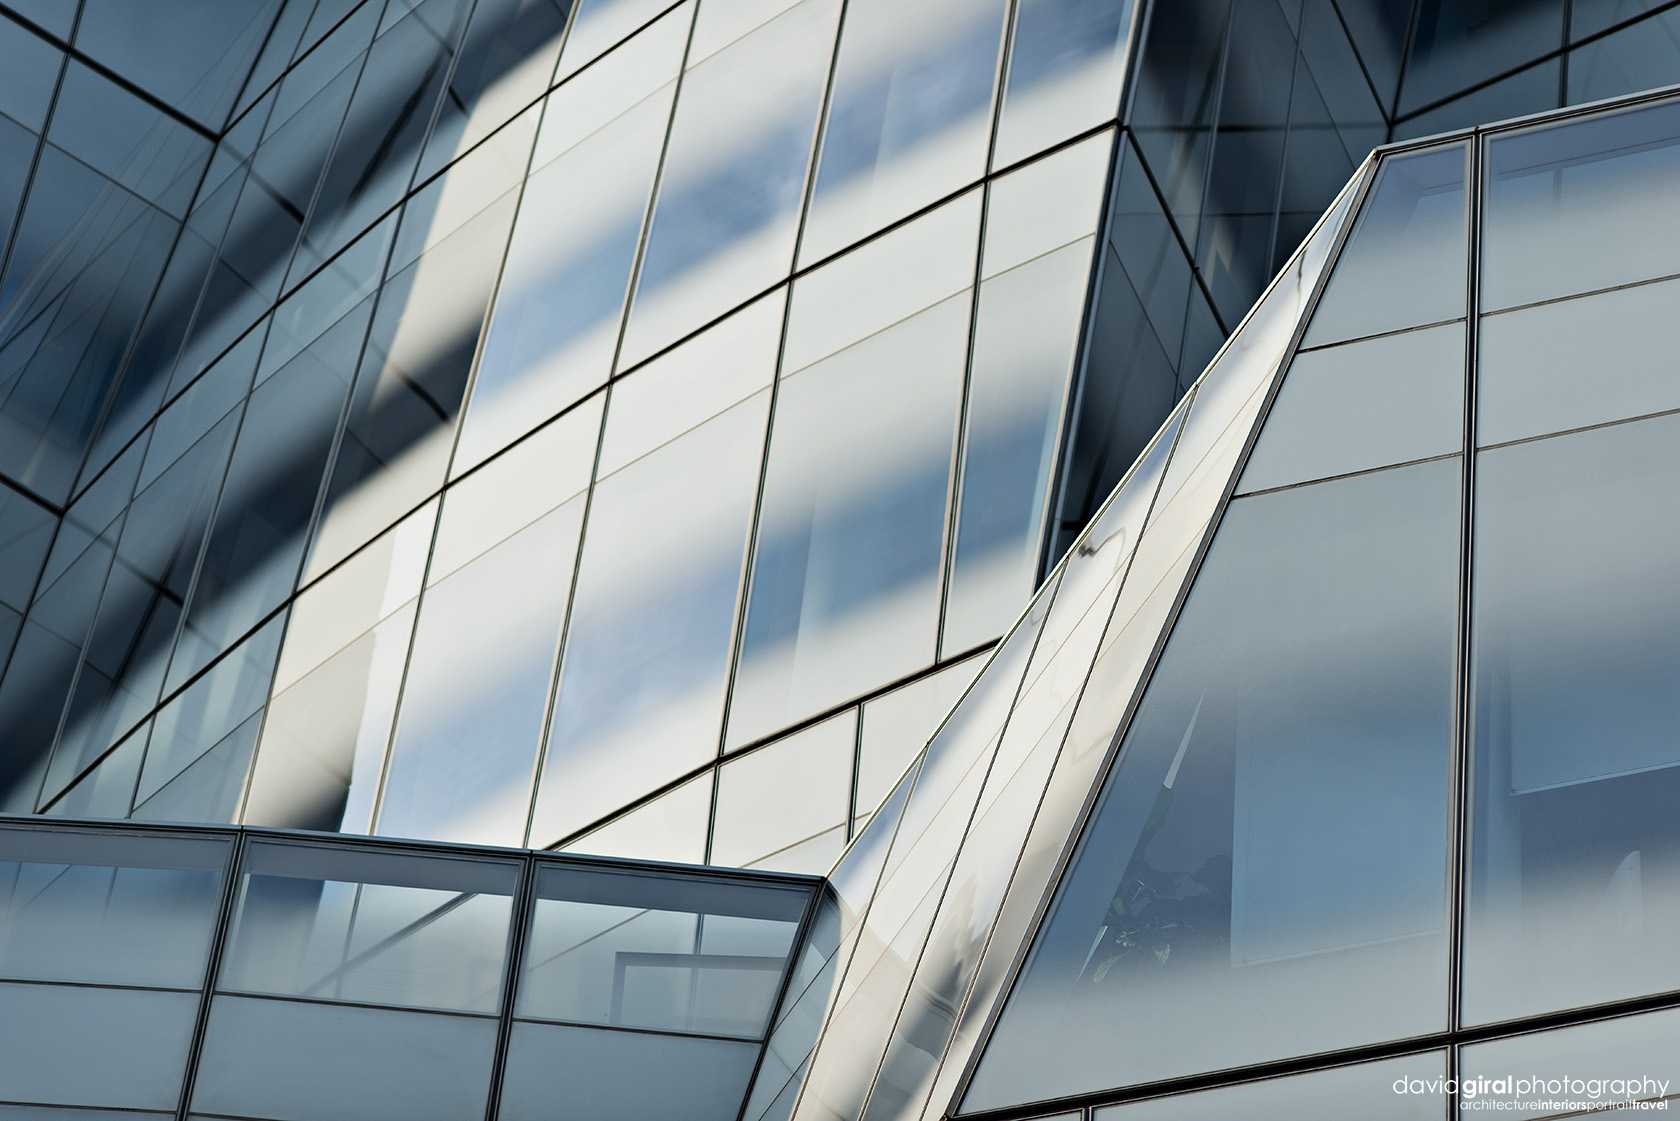 IAC Building abstract by architect Frank Ghery Nikon D800 + Nikkor 135mm f/2 DC | ISO160 - 1/1600s - F/3.5